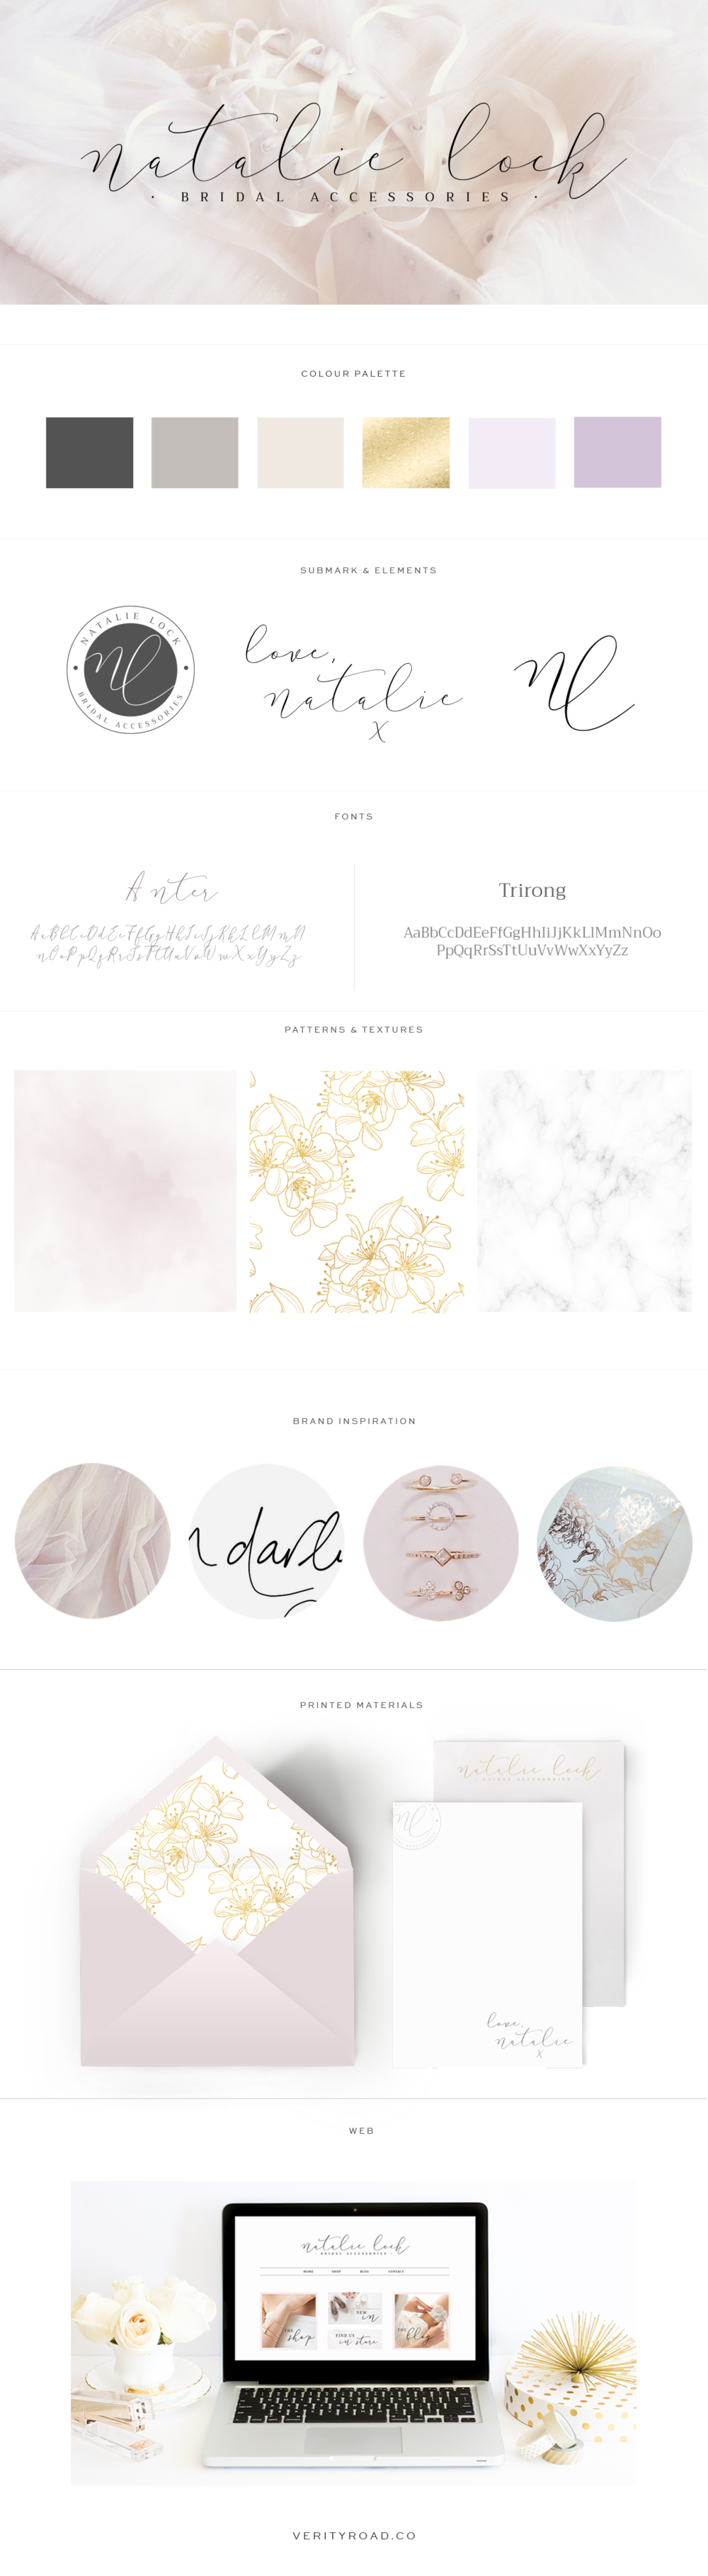 Brand style board for Natalie Lock Bridal | This luxury brand design board for a wedding bridal boutique business, wedding professional, shop owner and creative female entrepreneur has the logo, variation and submark, a muted lilac, ivory, gold, champagne, charcoal color palette with gorgeous script font and serif typography. Feminine branding includes watercolor texture, marble, and floral pattern. Click for mood board and social media branding and web design! verity road